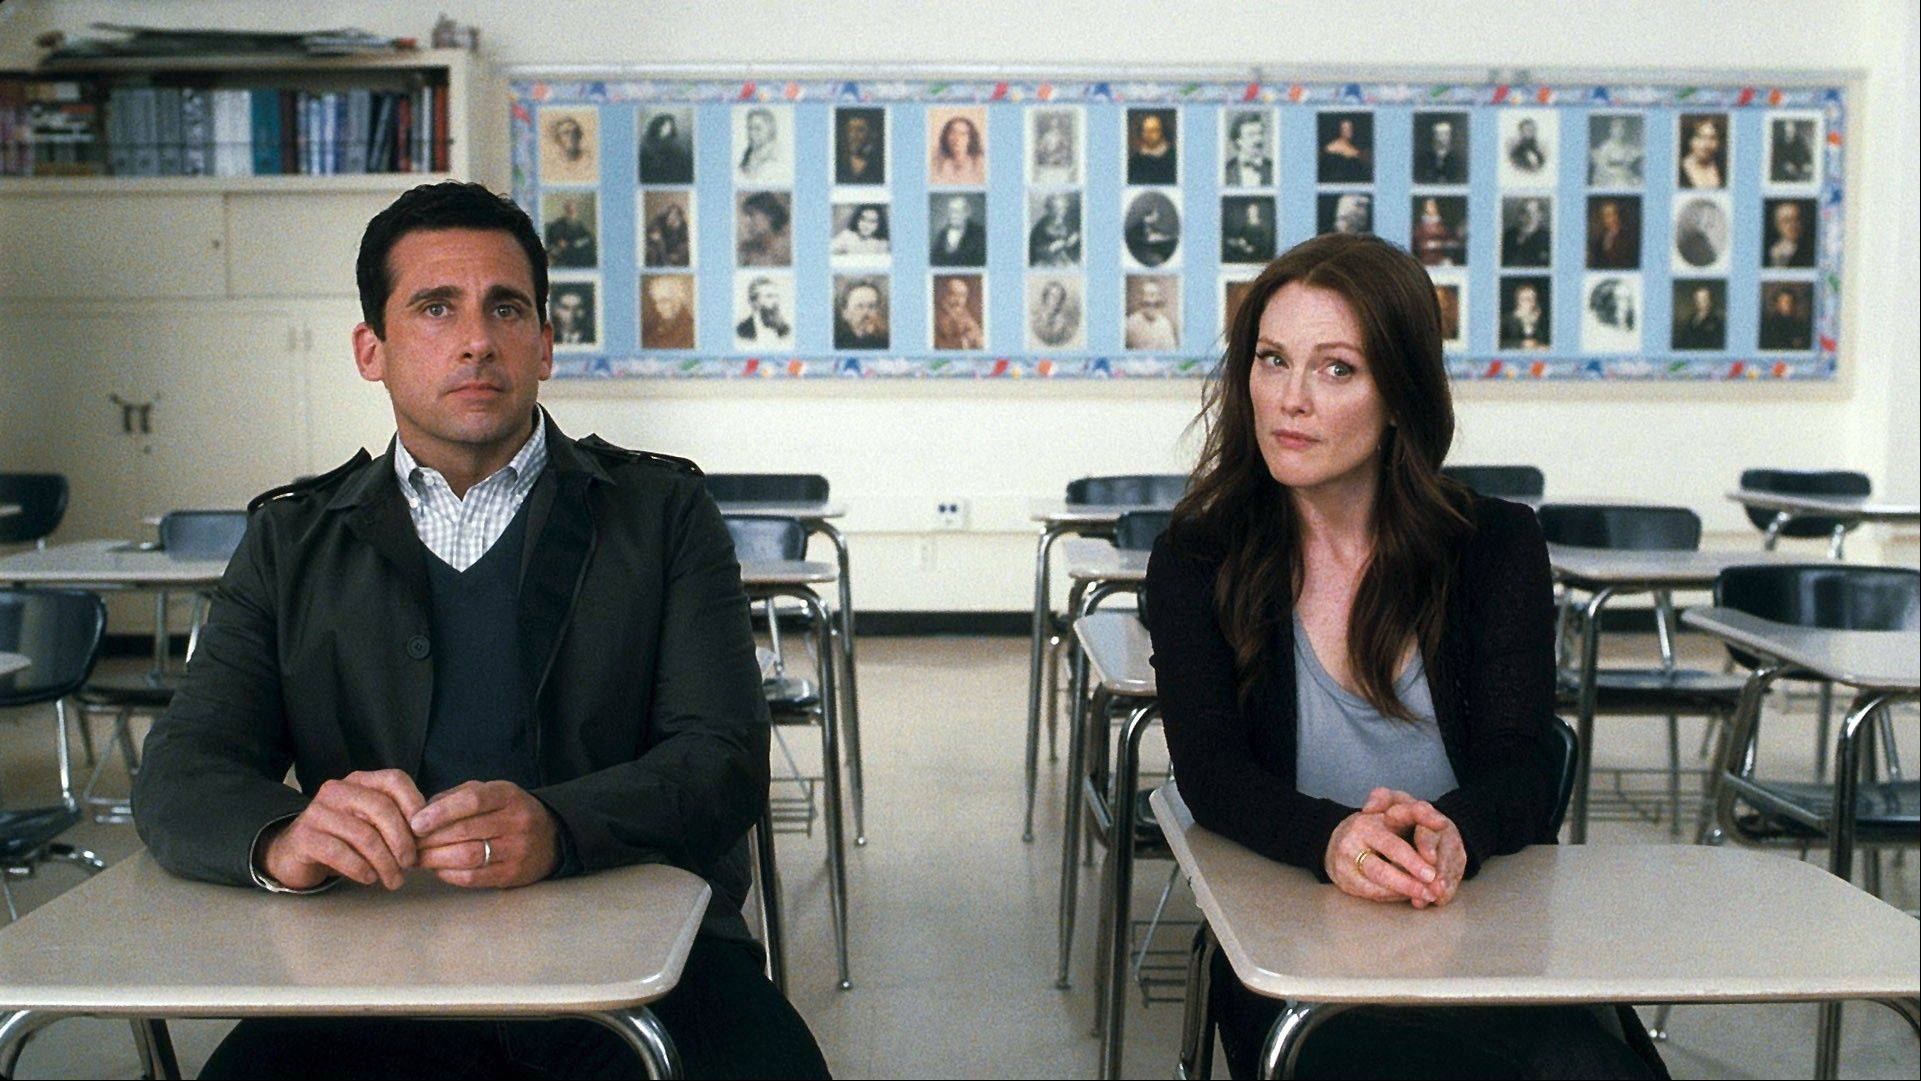 "Steve Carell and Julianne Moore are shown in a scene from ""Crazy, Stupid, Love."" When Carell's character learns that his wife (Moore) has cheated on him, they split and he starts sleeping all over town. But he, taking inspiration from his young son, eventually realizes his true love for his wife and their reunion seems promising."